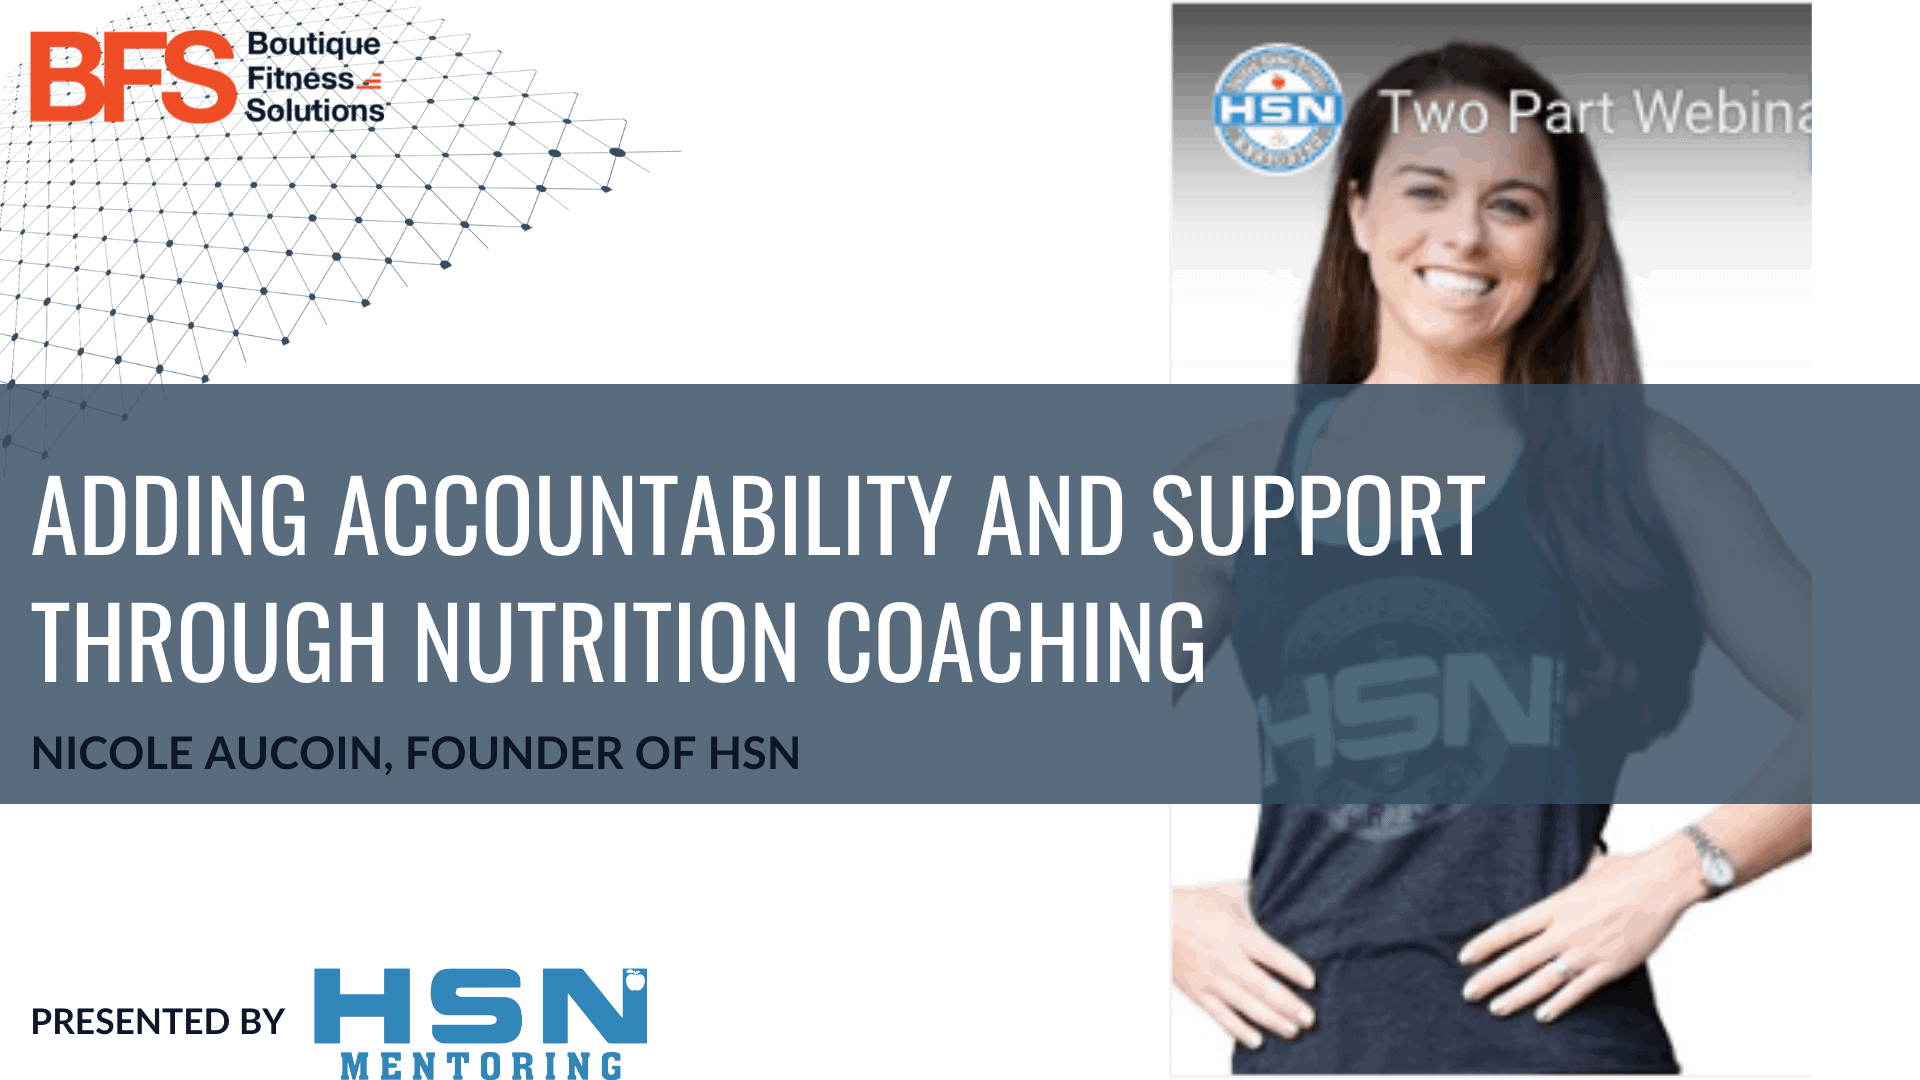 Adding Accountability and Support During Uncertain Times Through Nutrition Coaching to Retain Your Membership